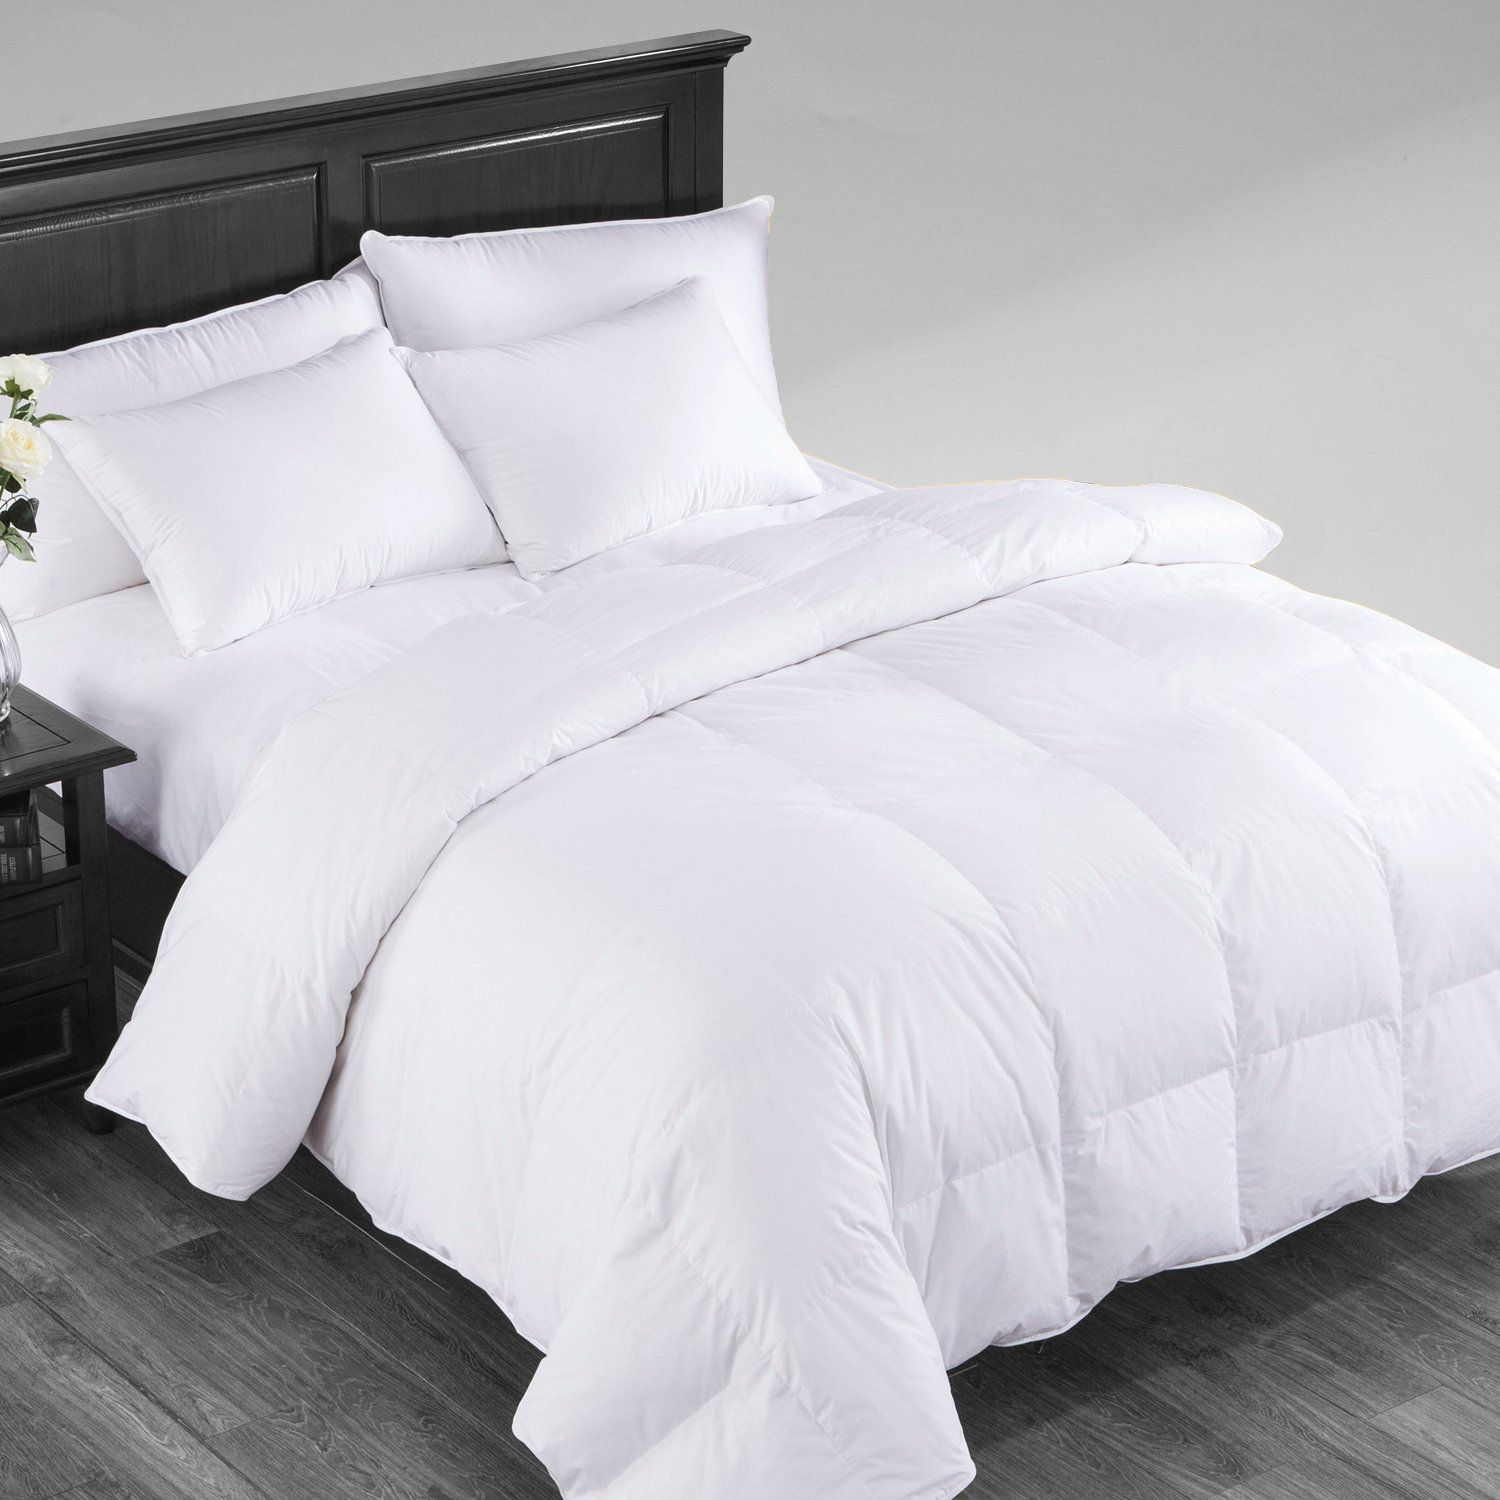 Puredown All Baffle Box Design Duvet Insert 700 Filling Power All Allseason Down Comforter Full Queen White Down Comforter White Down Comforter Guest Room Bed